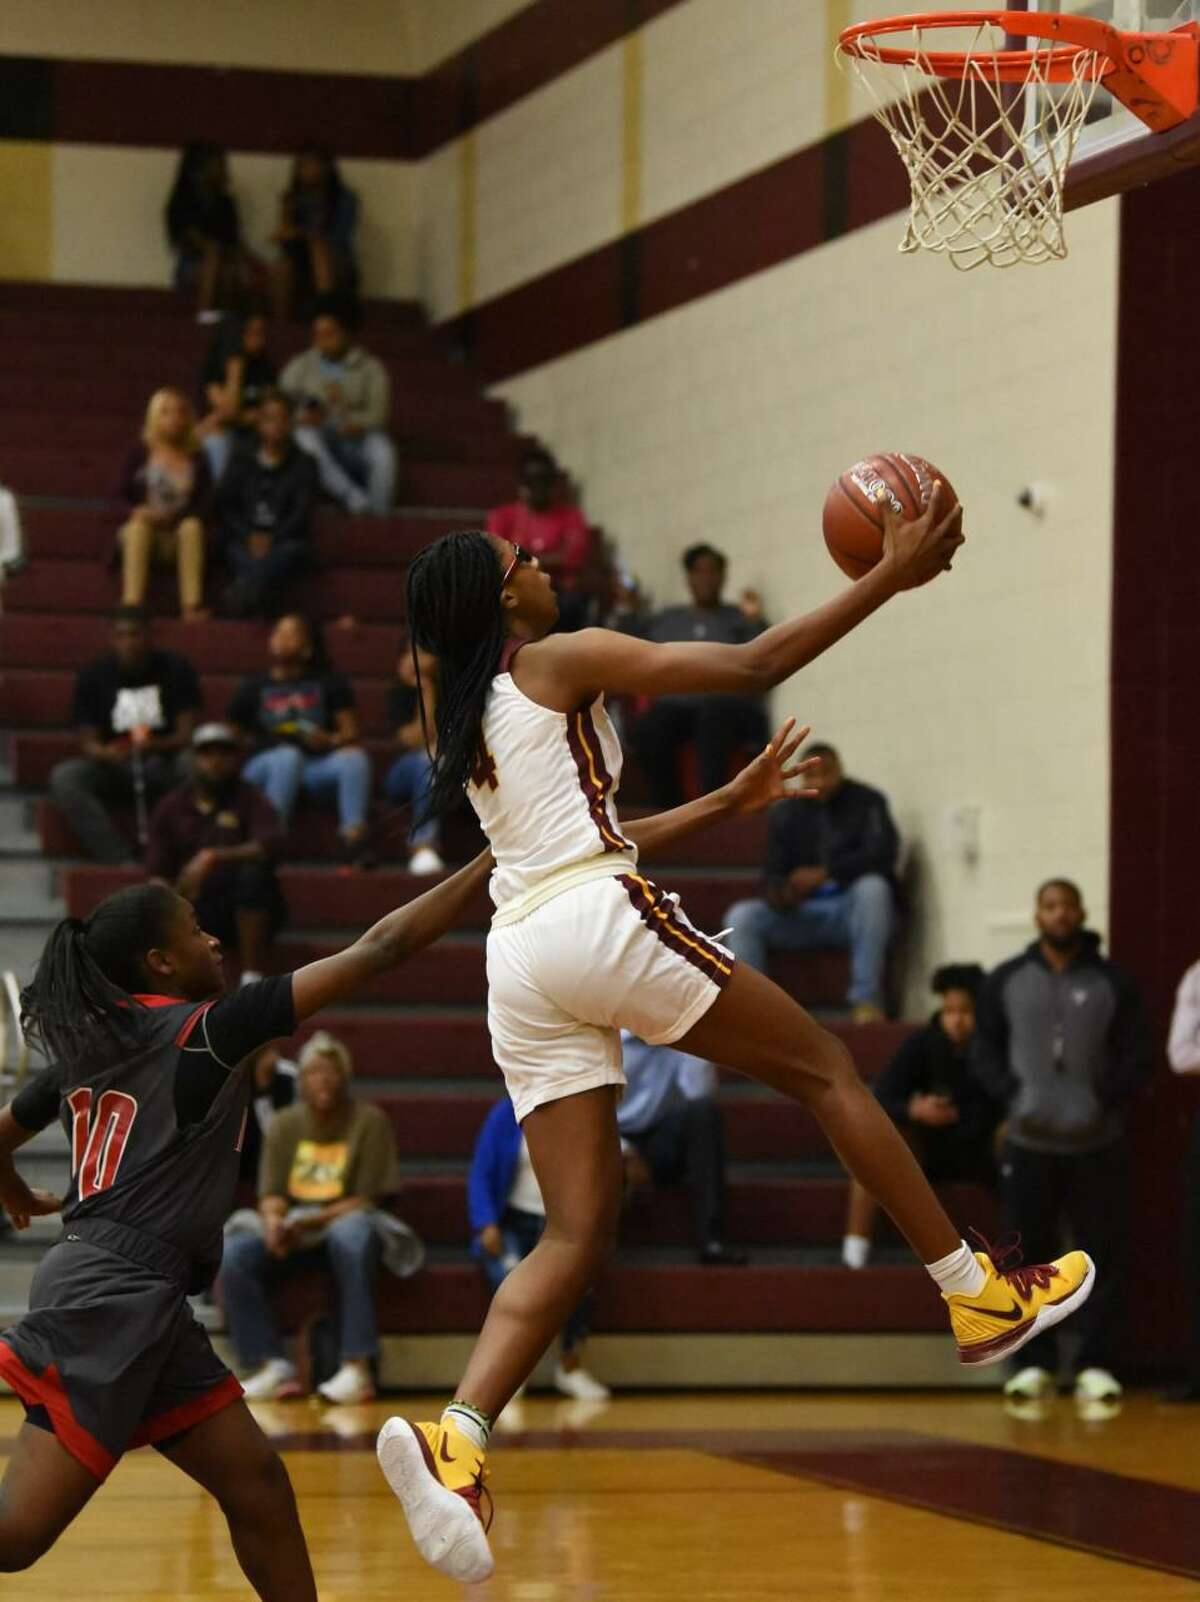 Summer Creek forward Kaitlyn Duhon goes for a layup in a non-district game Tuesday night against North Shore at the Bulldog gym.